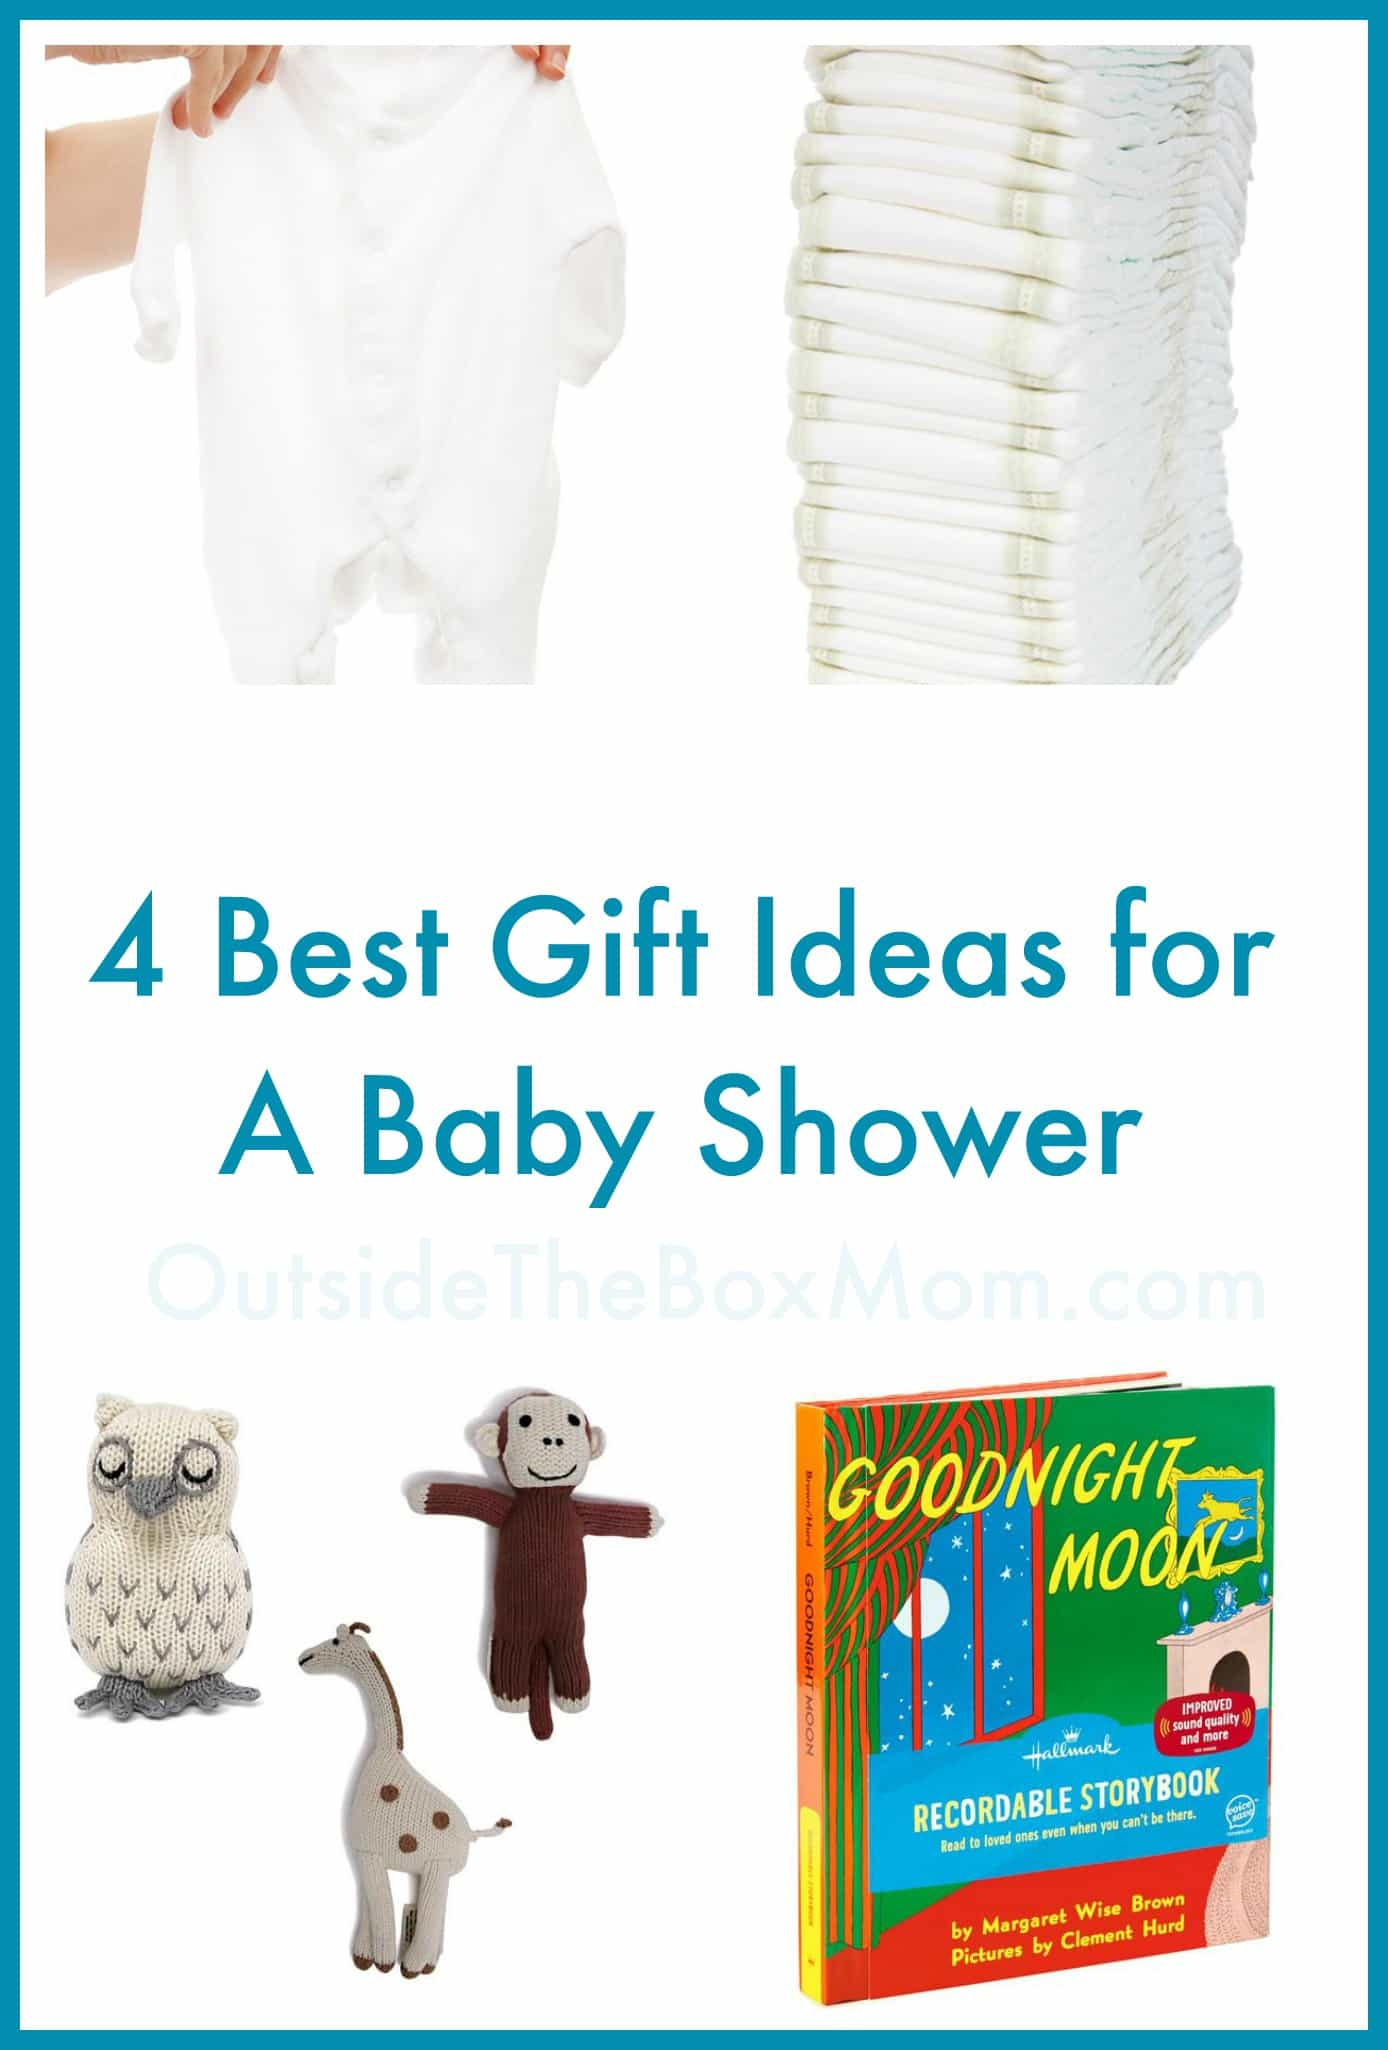 Are you looking for gift ideas for baby shower? This simple list will give you four practical ideas that the parents to be are sure to love.